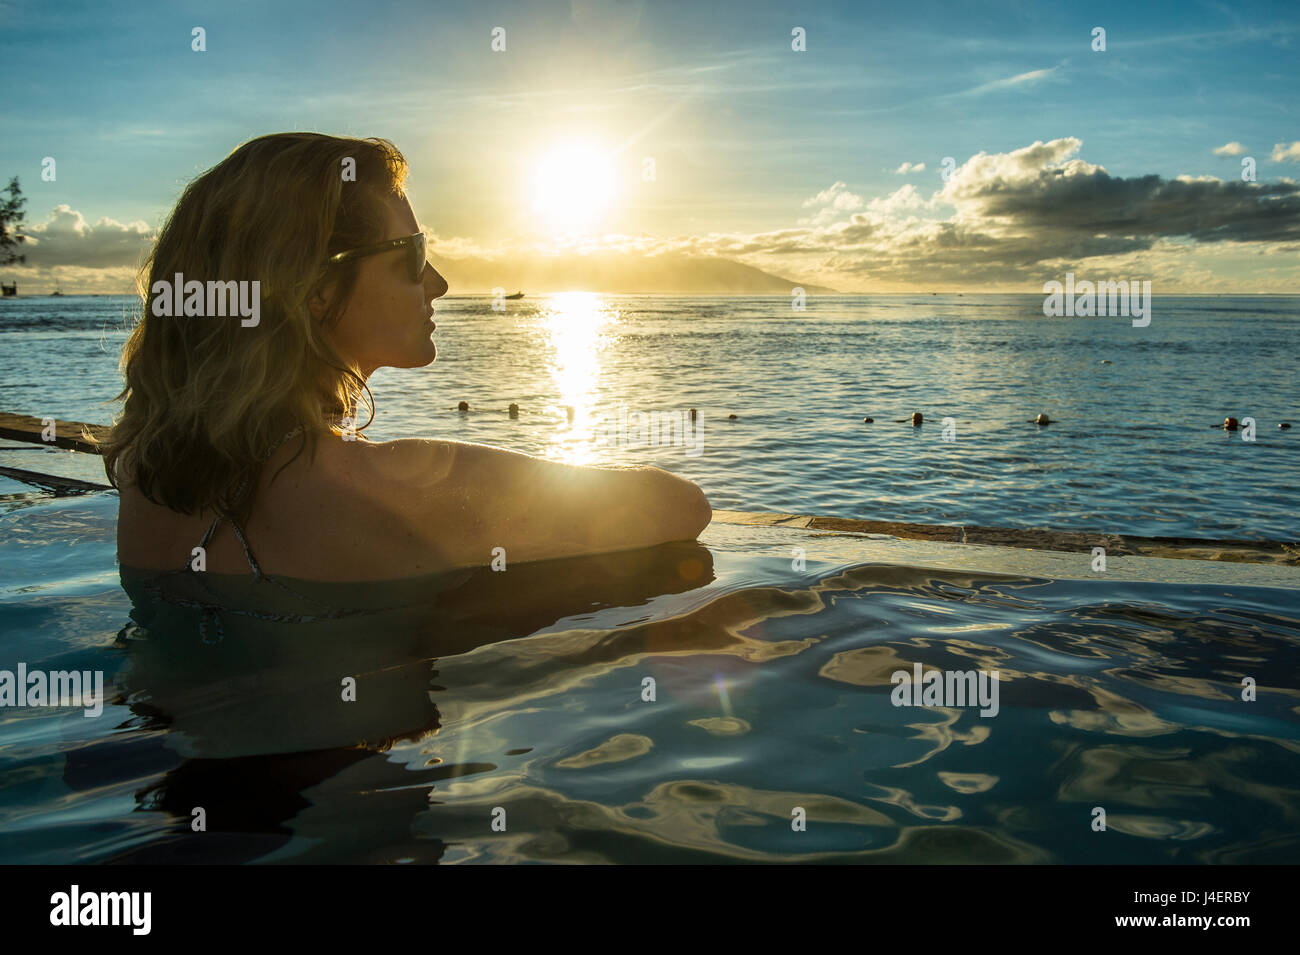 Woman enjoying the sunset in a swimming pool with Moorea in the background, Papeete, Tahiti, Society Islands - Stock Image